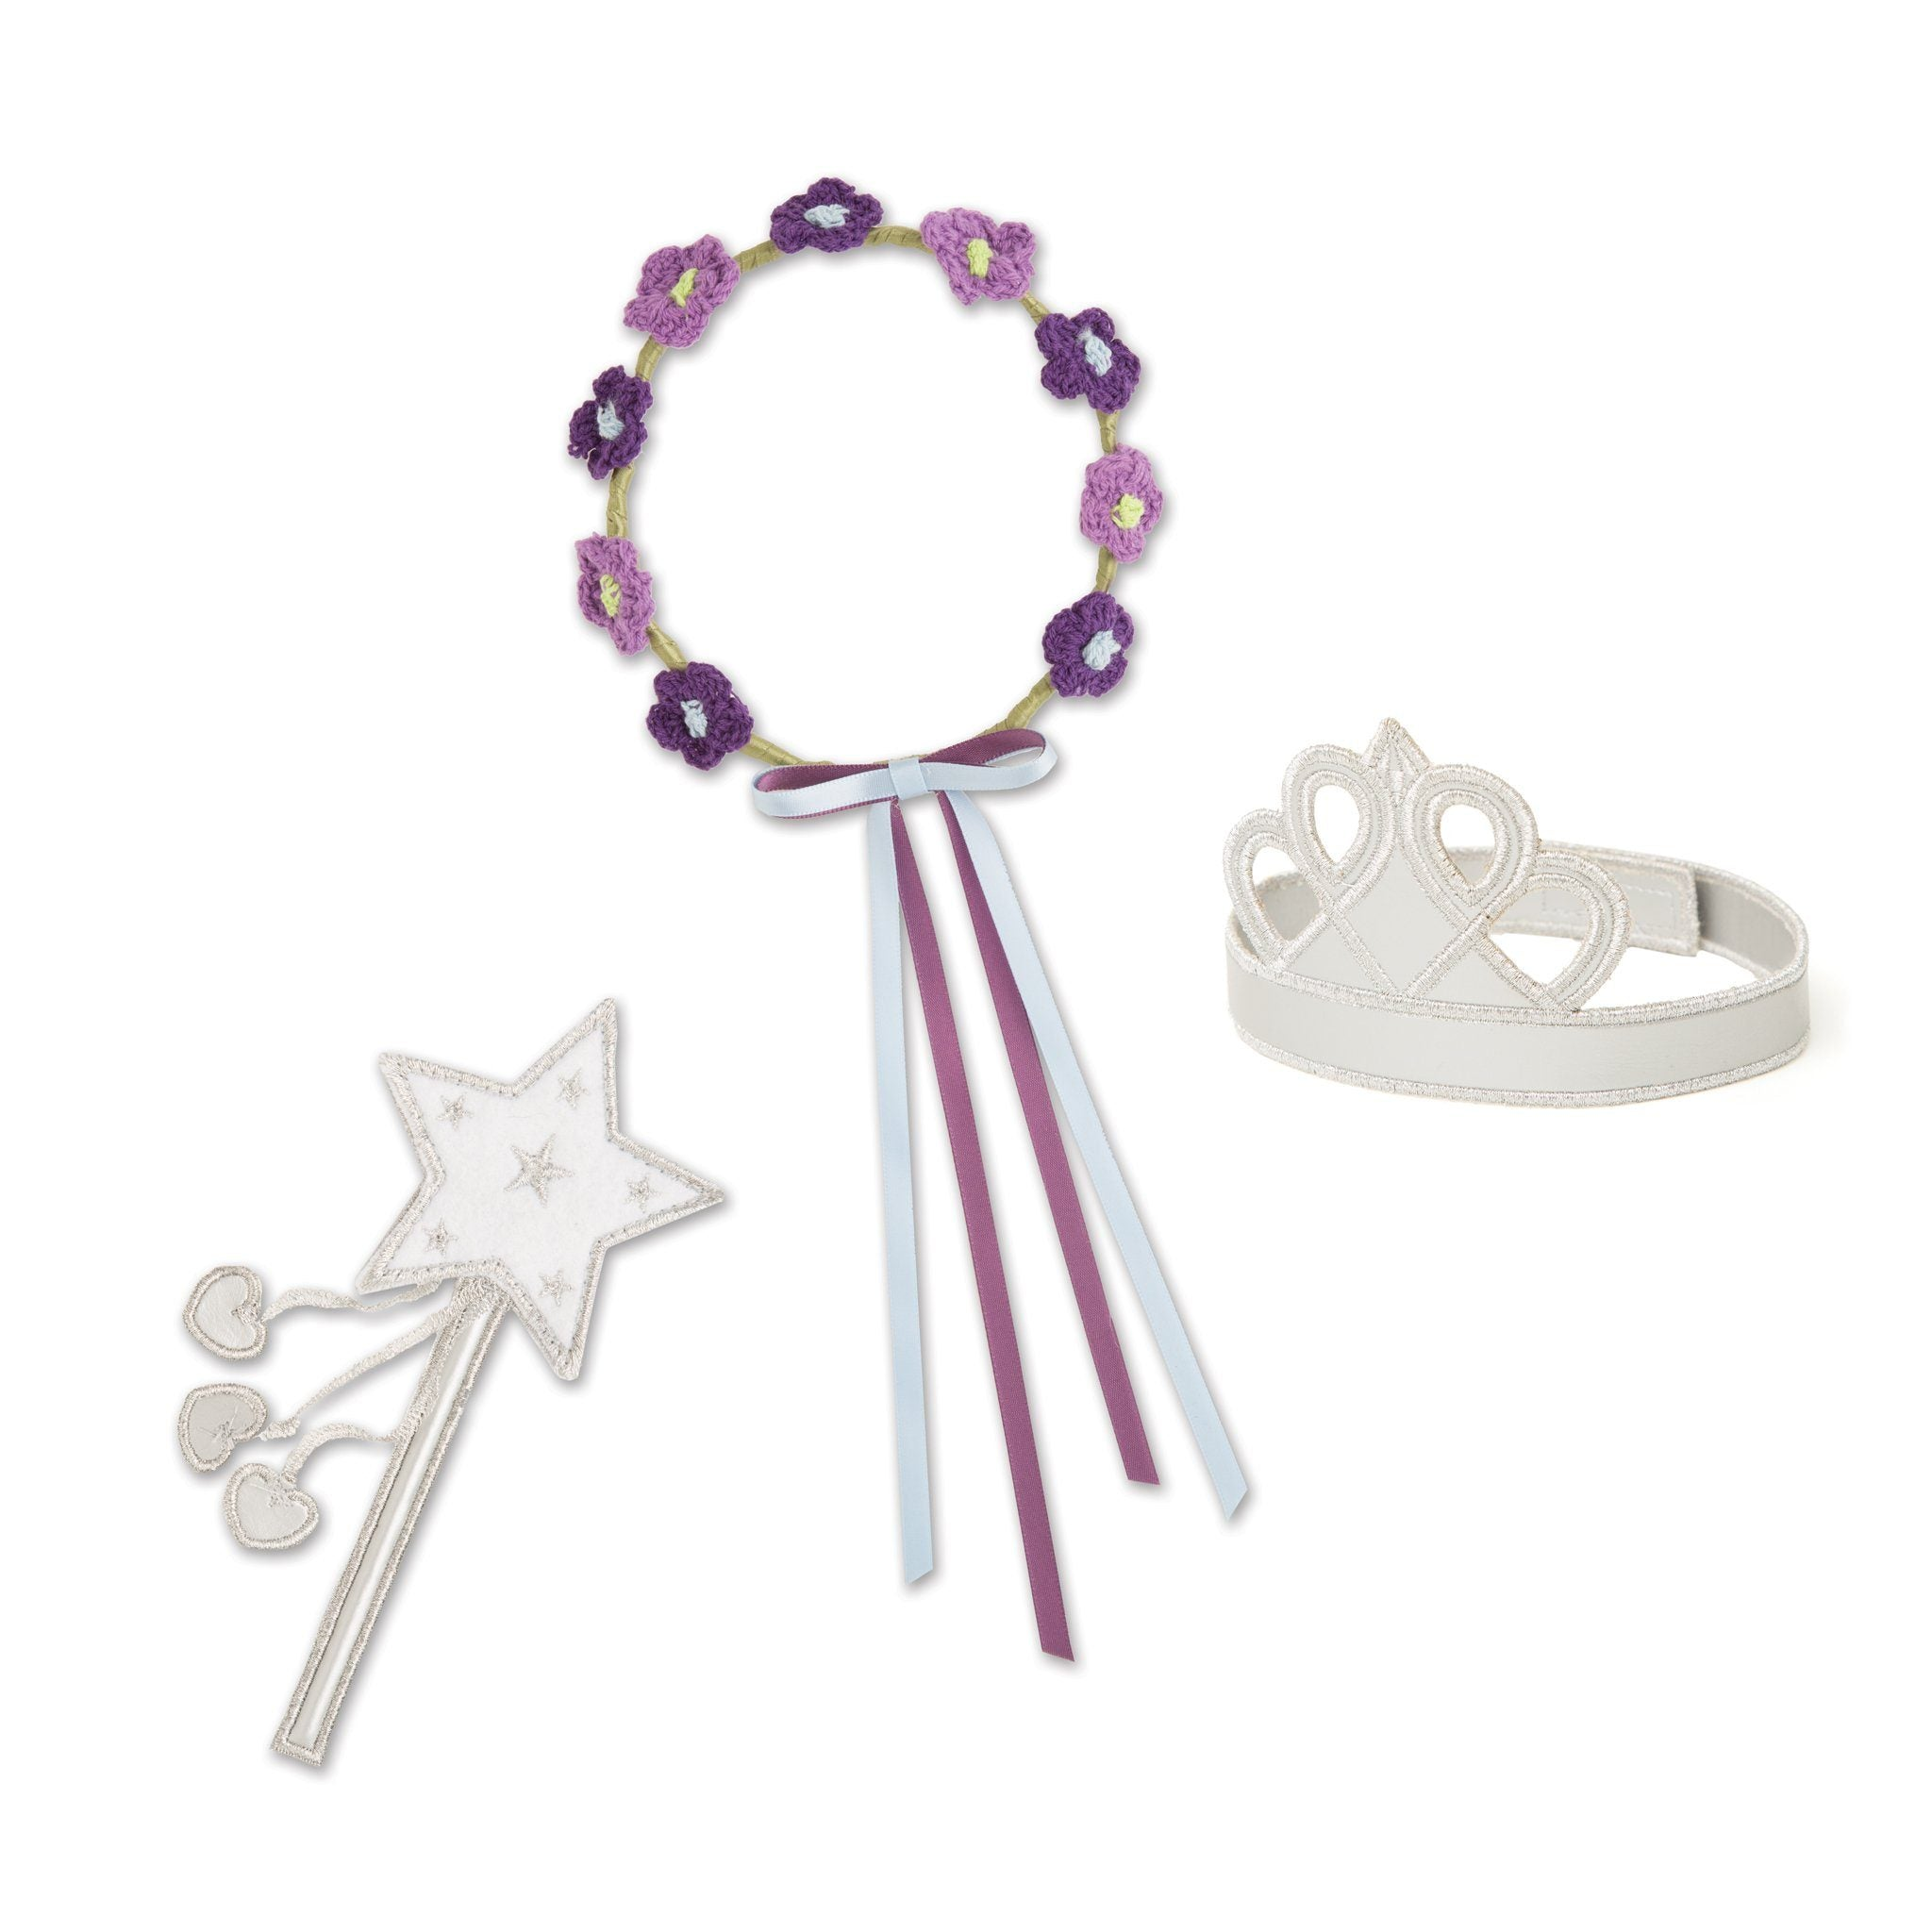 Flight of Fantasy costume fairy magic wand, silver tiara and wings, flower wreath for 18 inch dolls.